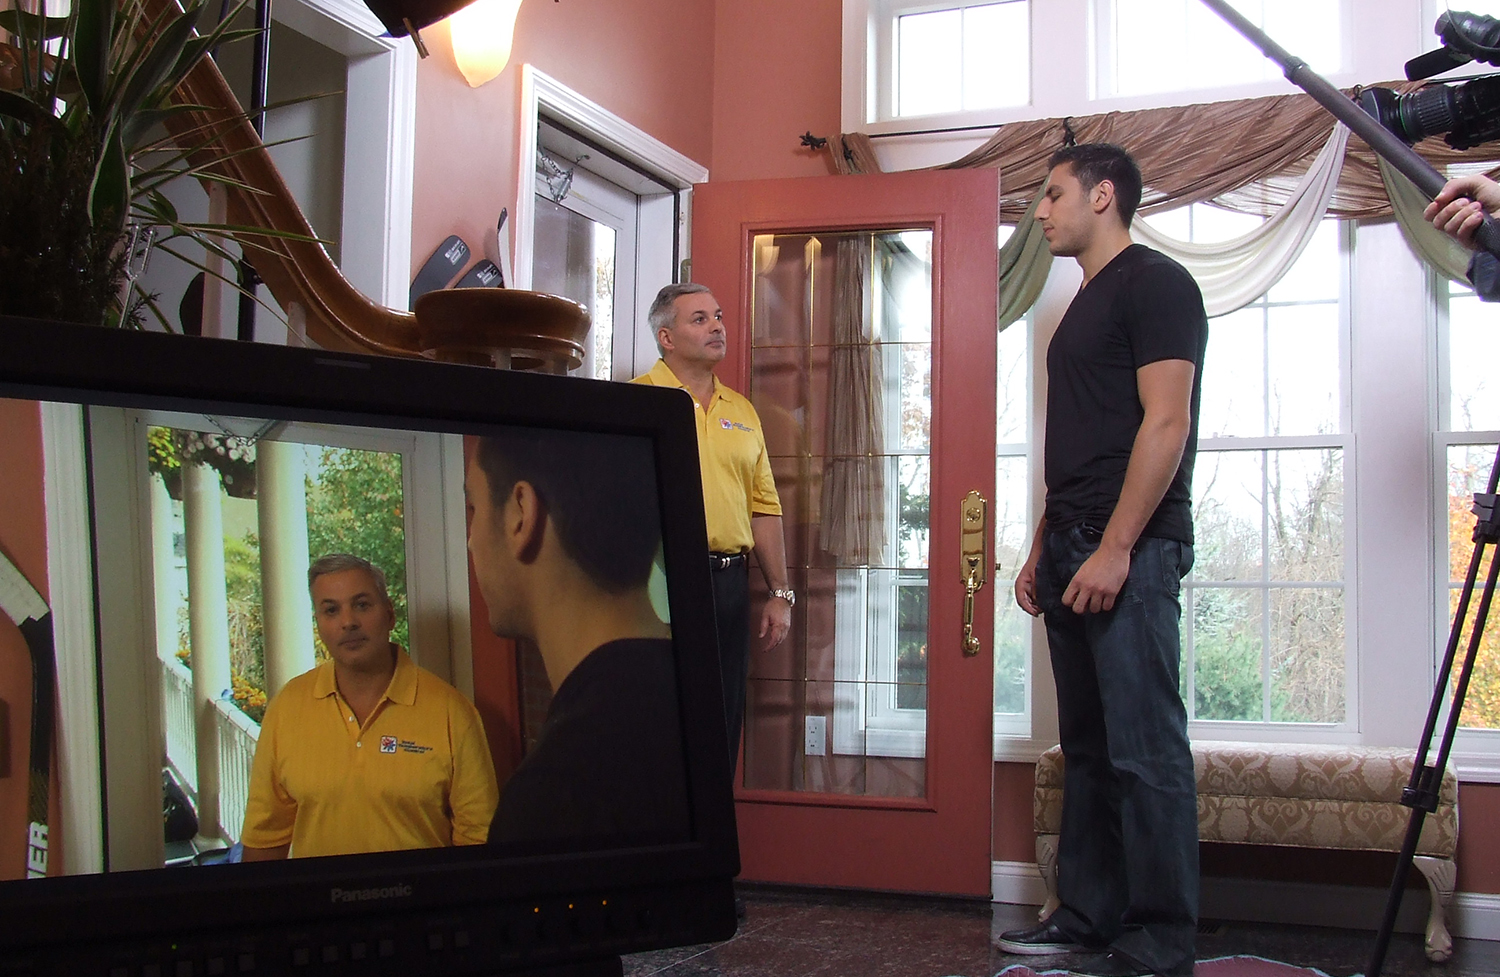 Total Temp and Milan Lucic feature a Carrier heating and cooling system in a television commercial.